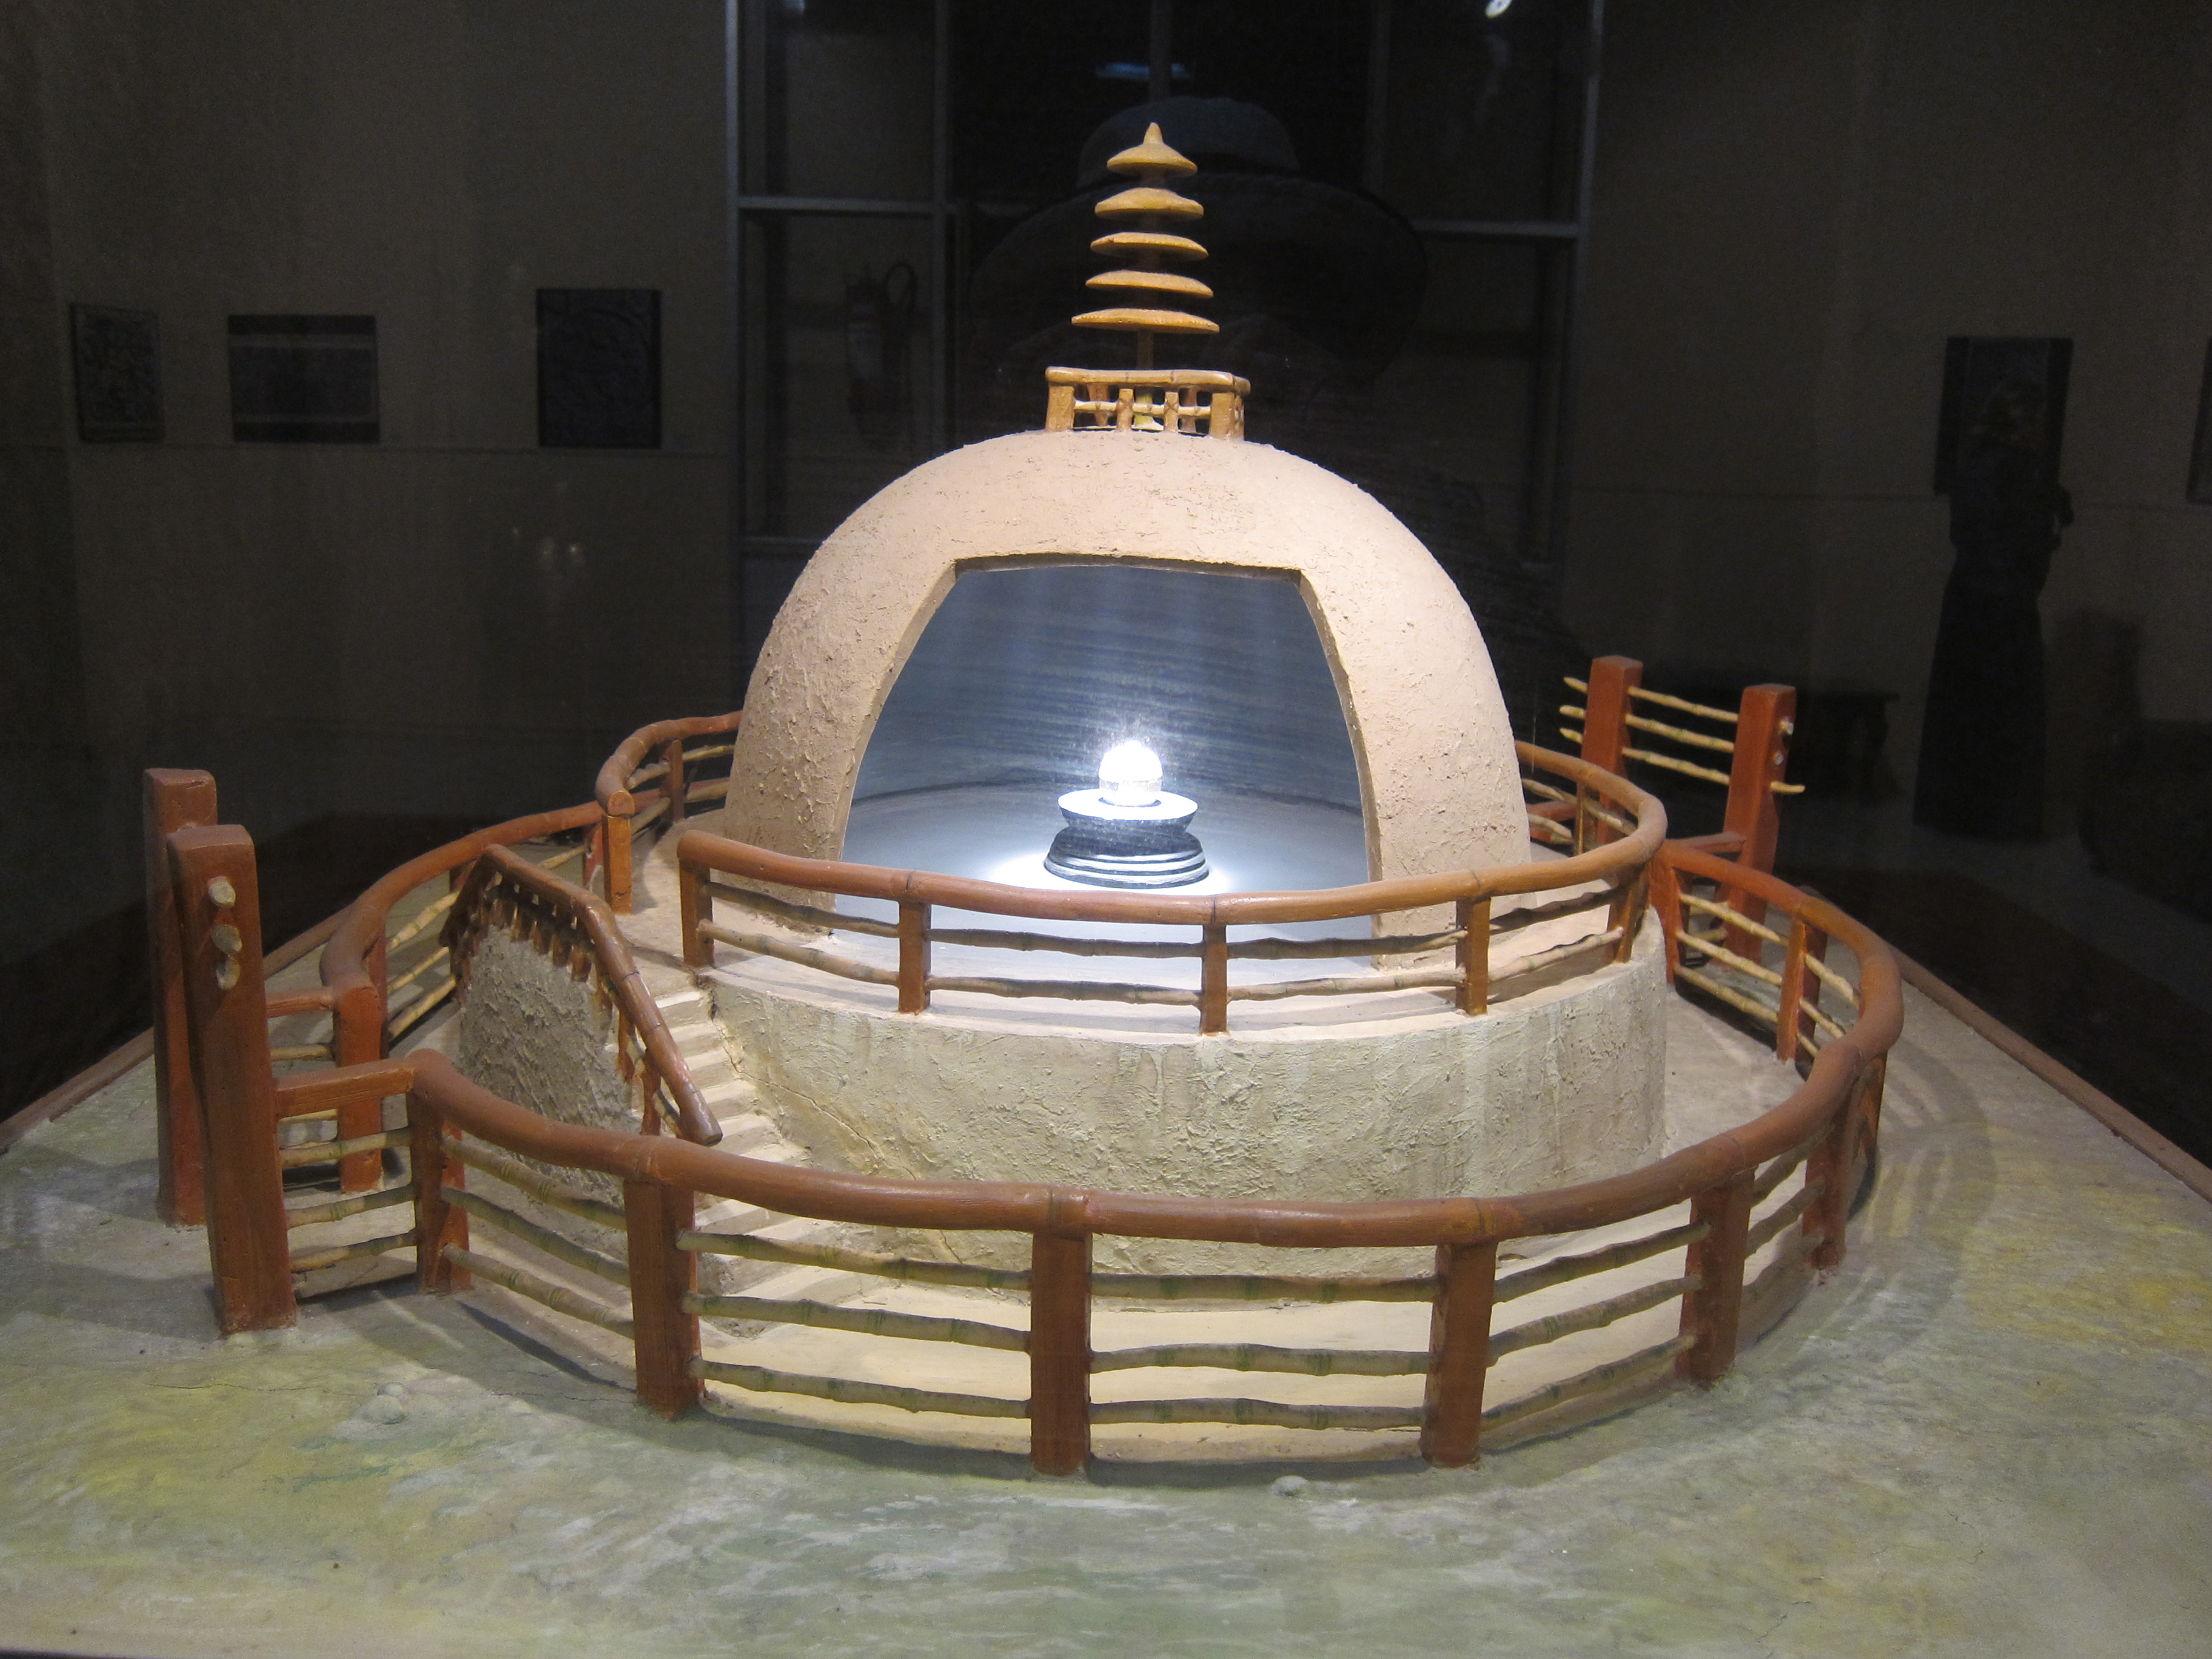 Buddha Relic Stupa Vaishali, PILGRIMAGE 2013: We offer our photos and comments in the hopes ...